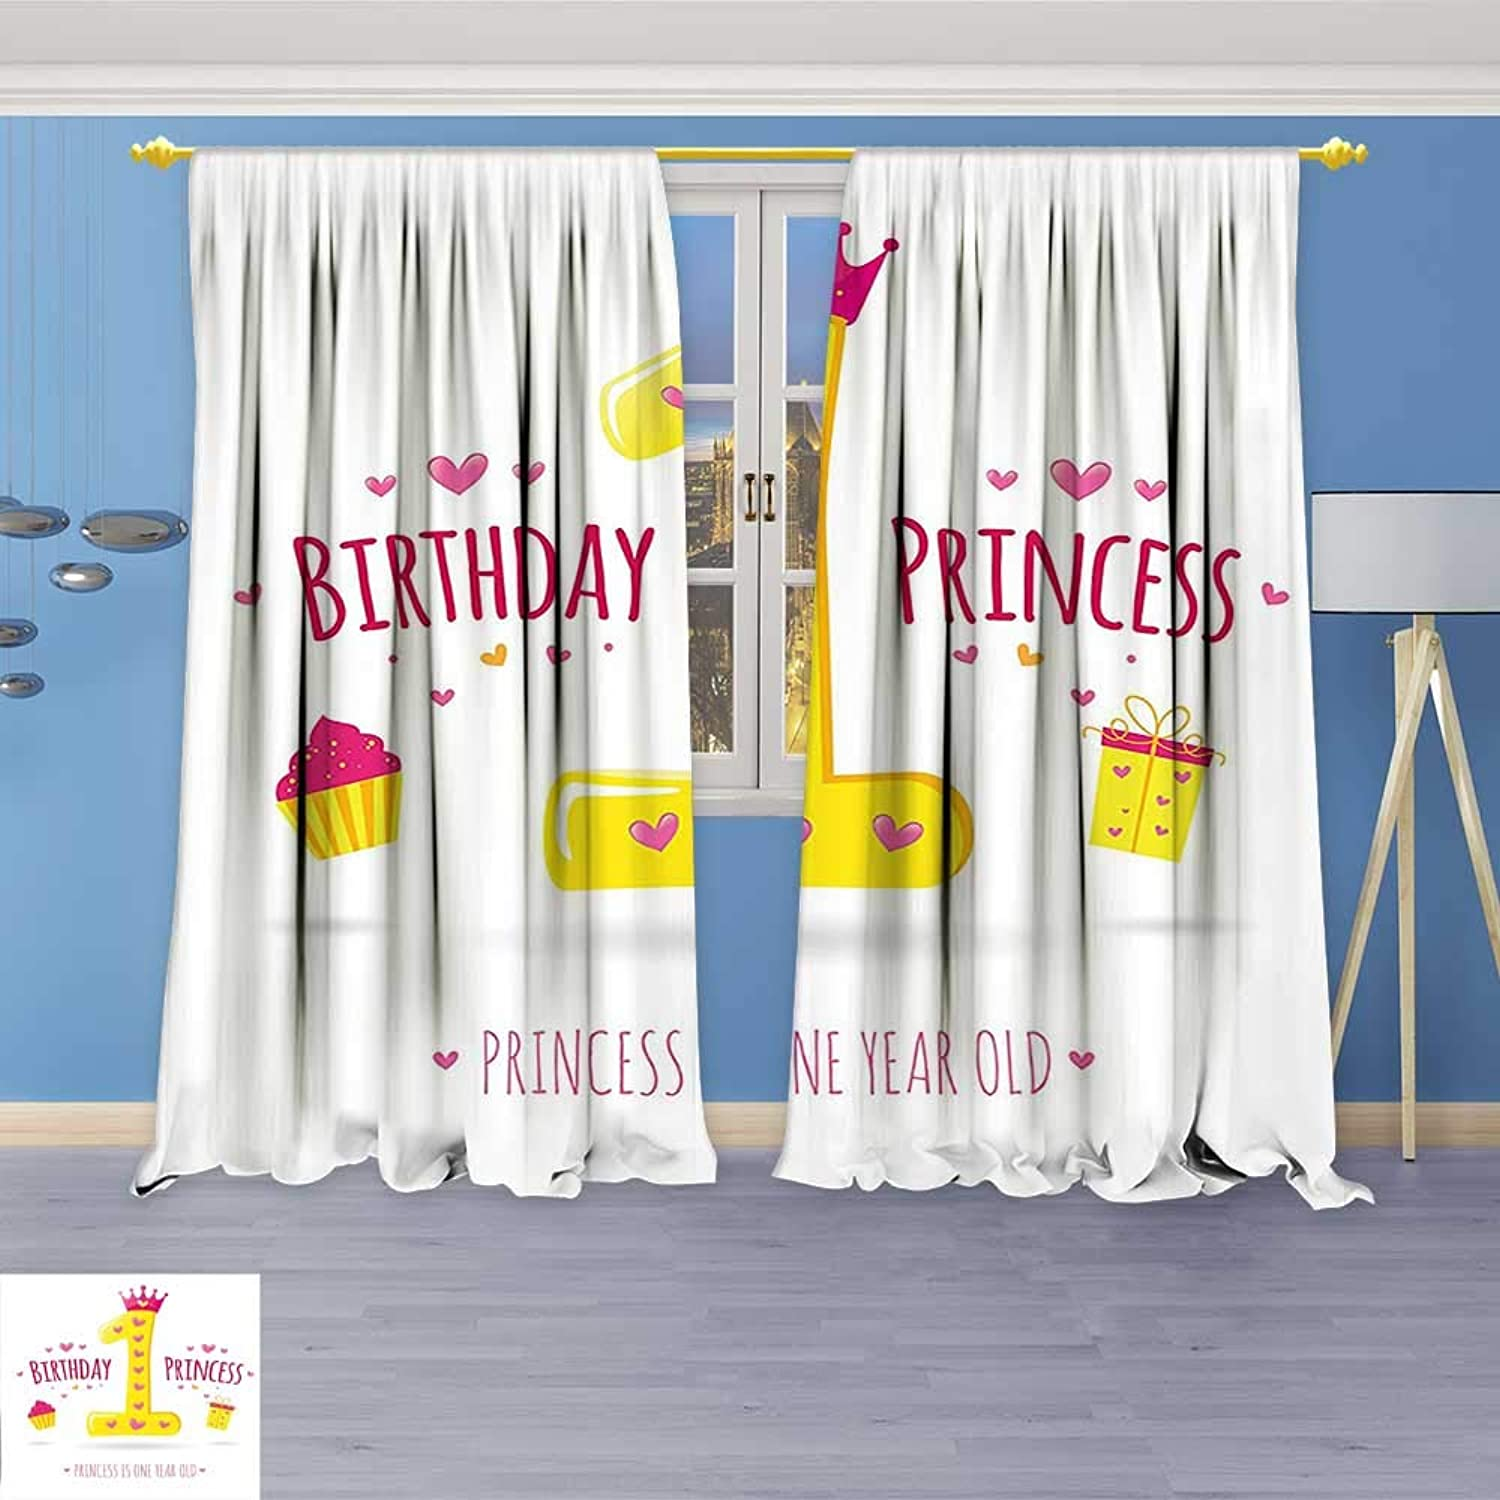 Philiphome Thermal Insulated Blackout Window Room Decorations Quote Design Princess Girl Theme Party with Hearts Image Yellow and Hot Top Extra Long Curtains Set of 2 Panels